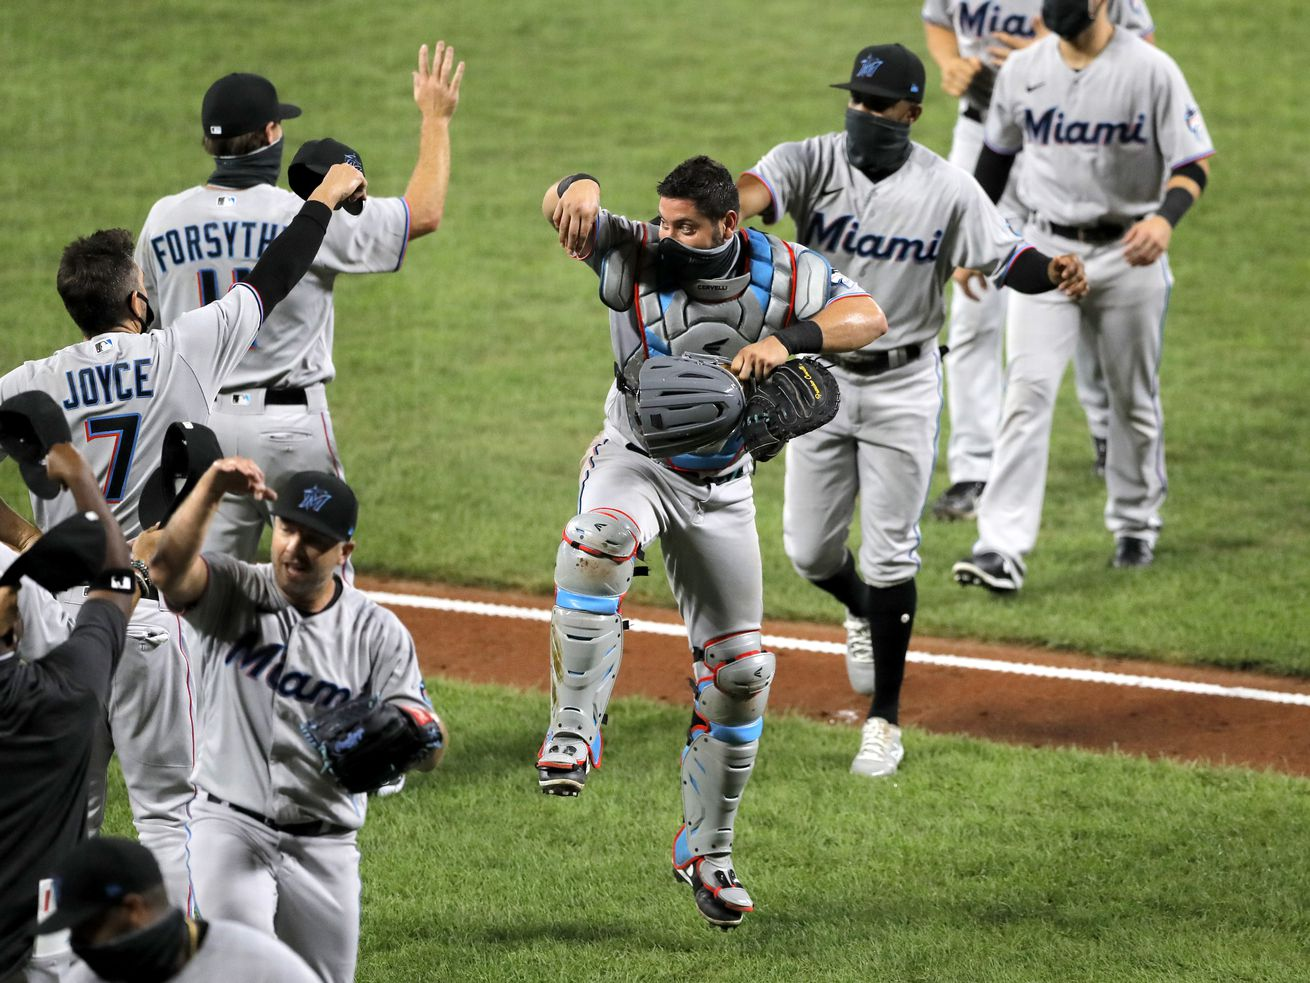 Marlins resume season and win with 18 new players